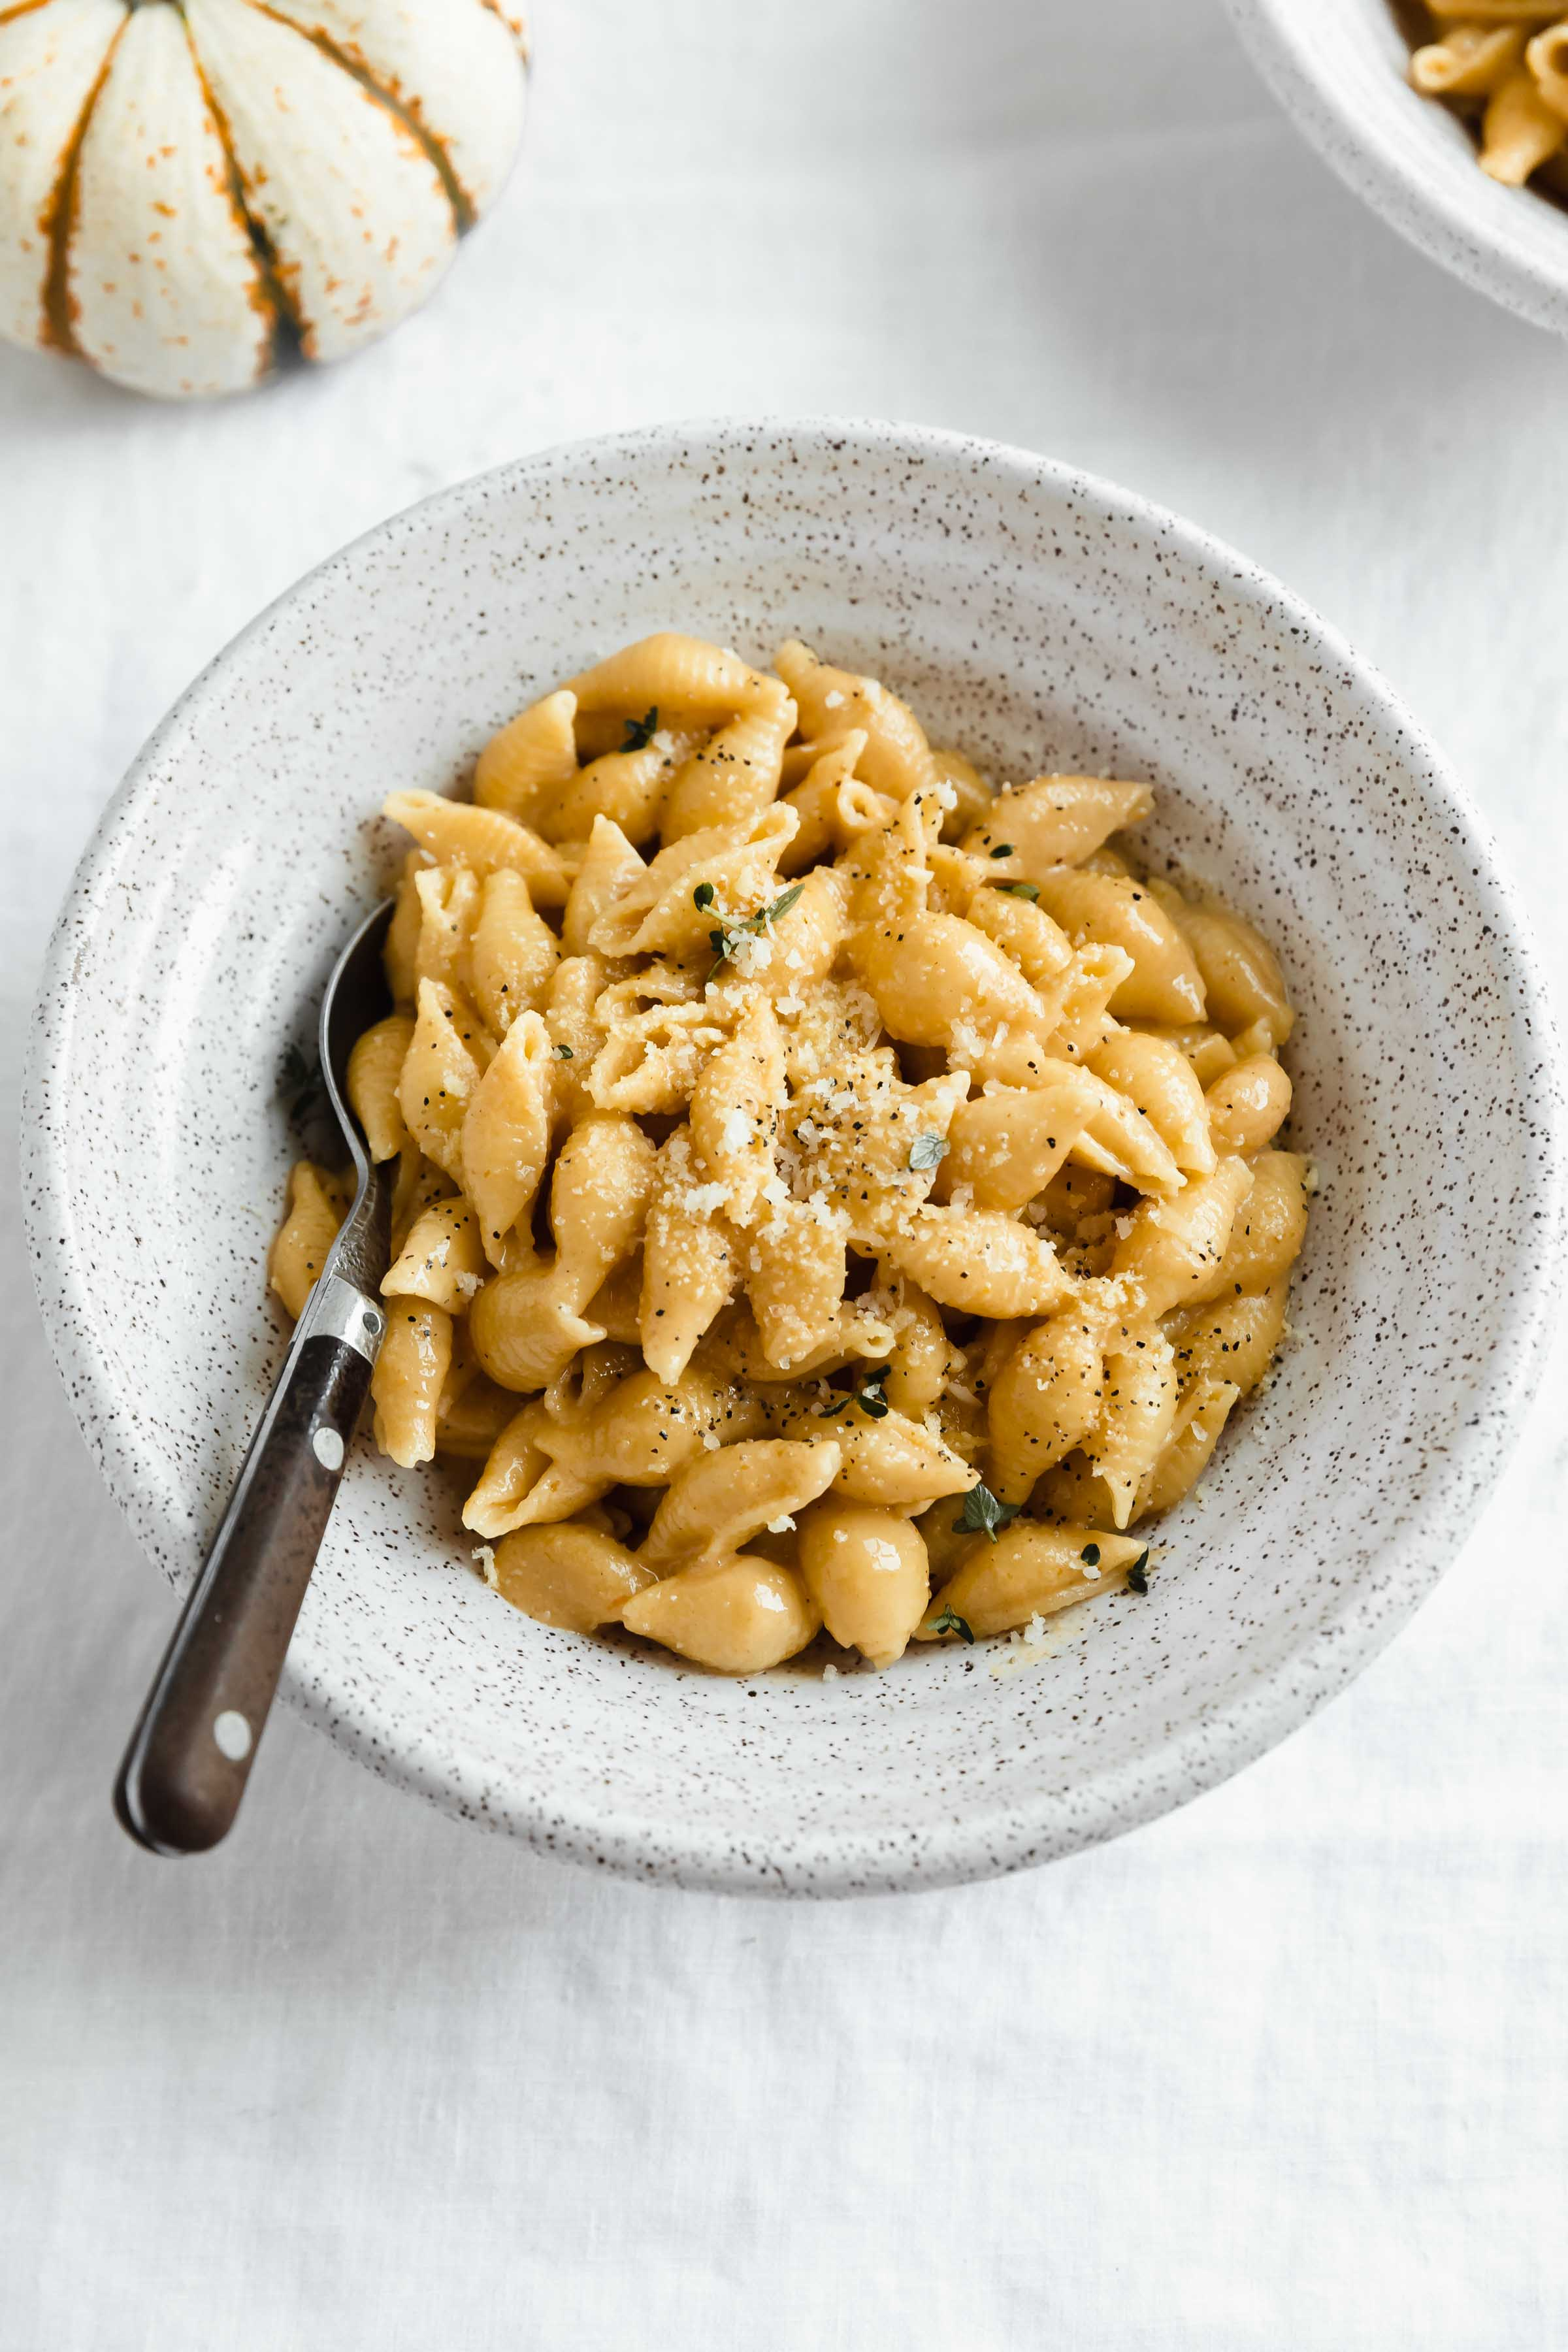 Time to get cozy! Snuggle up with a big bowl of this healthyish homemade pumpkin mac and cheese. Made with gruyere, cheddar, pumpkin and a hint of nutmeg!